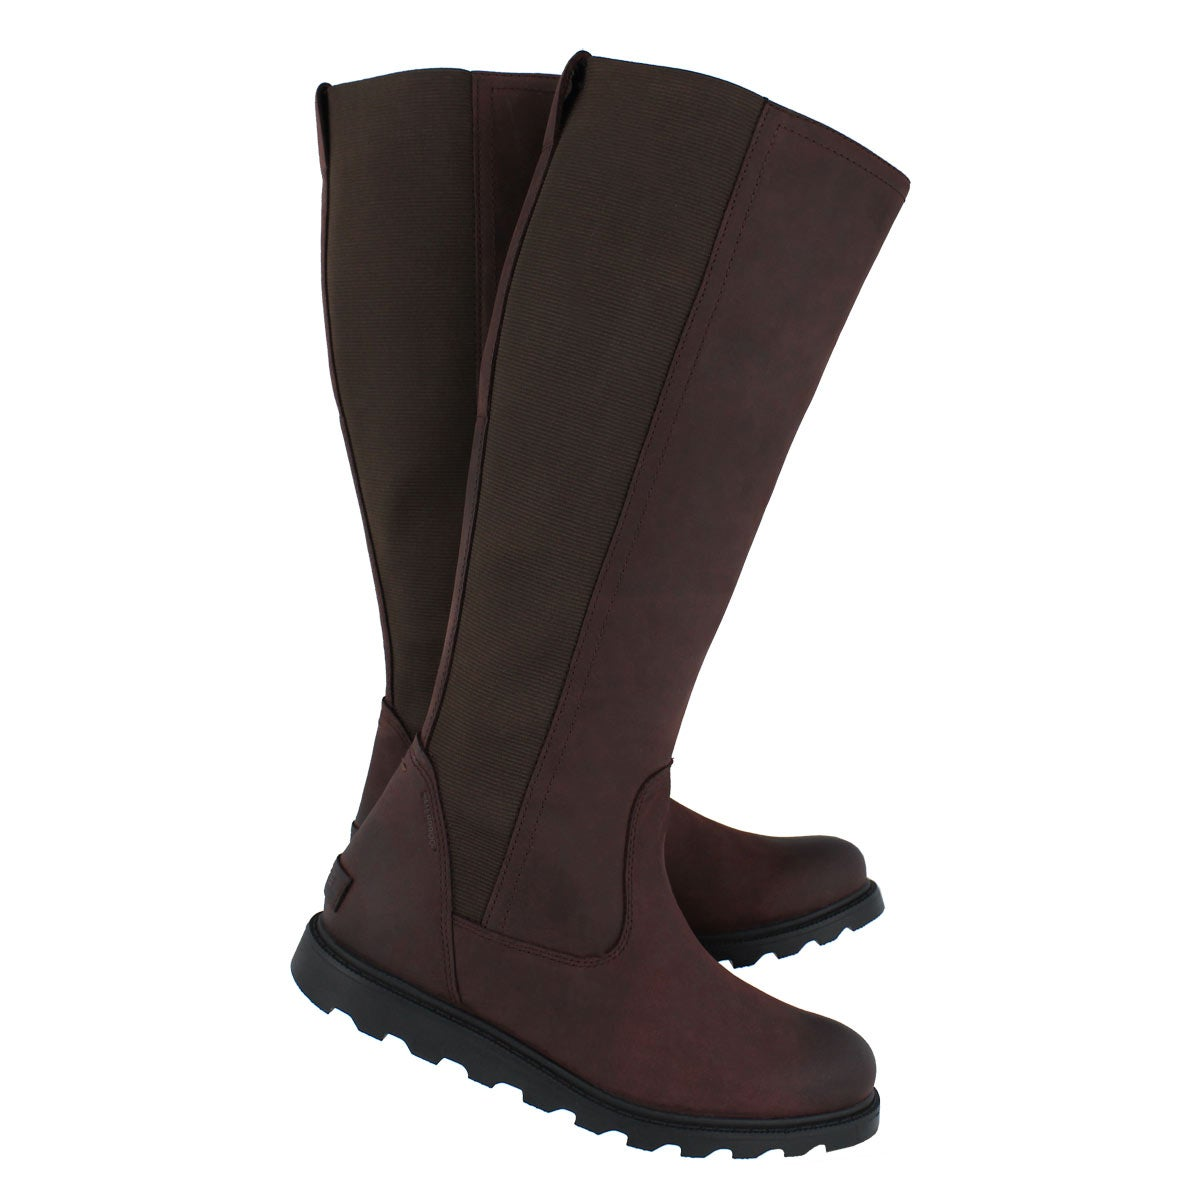 Lds Ainsley Tall cattail wtpf boot